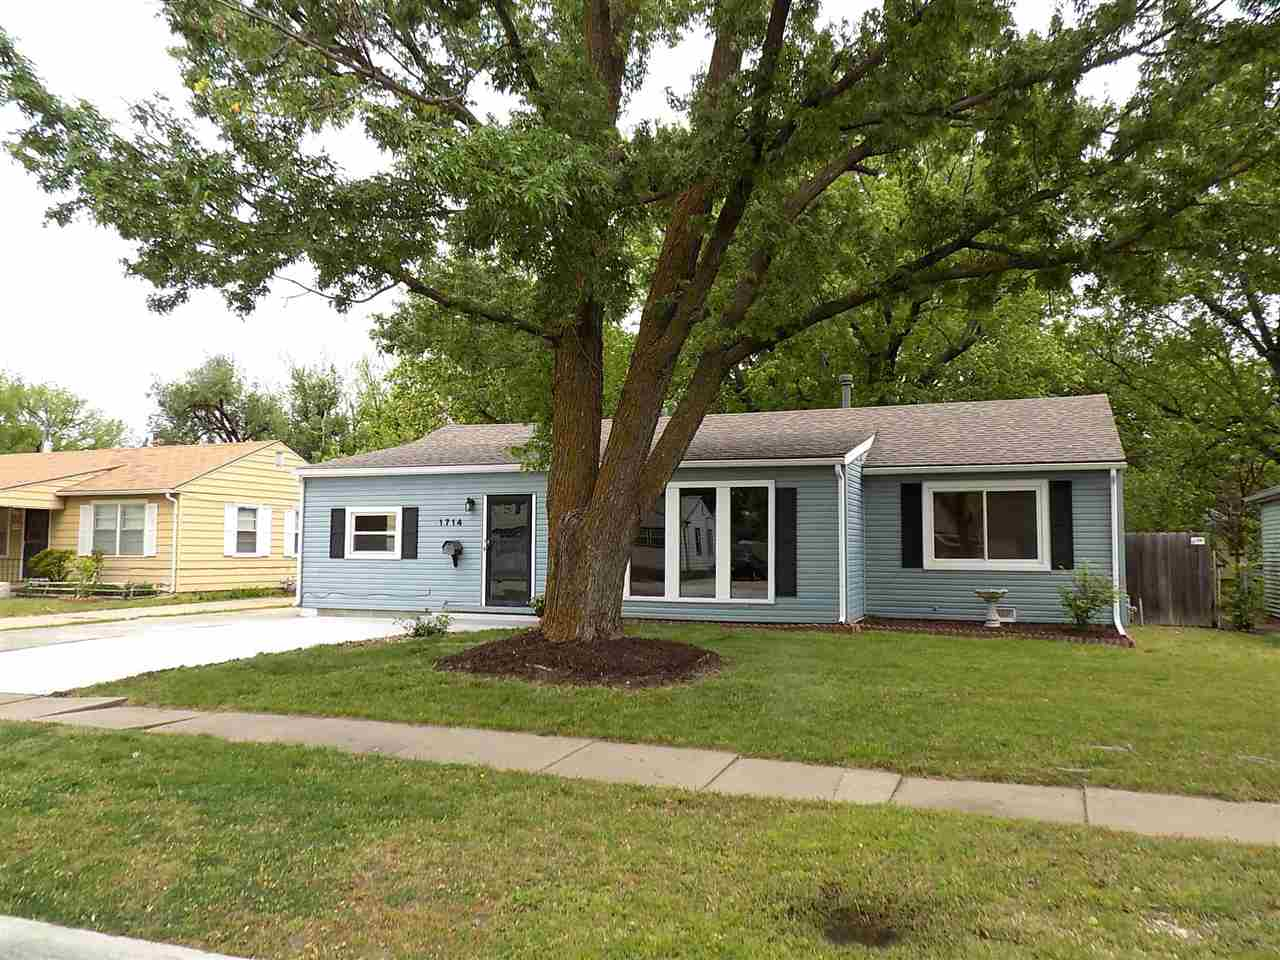 Beautifully updated 4 bedroom, 2 bath, ranch house.  House has hardwood floors throughout, all new i